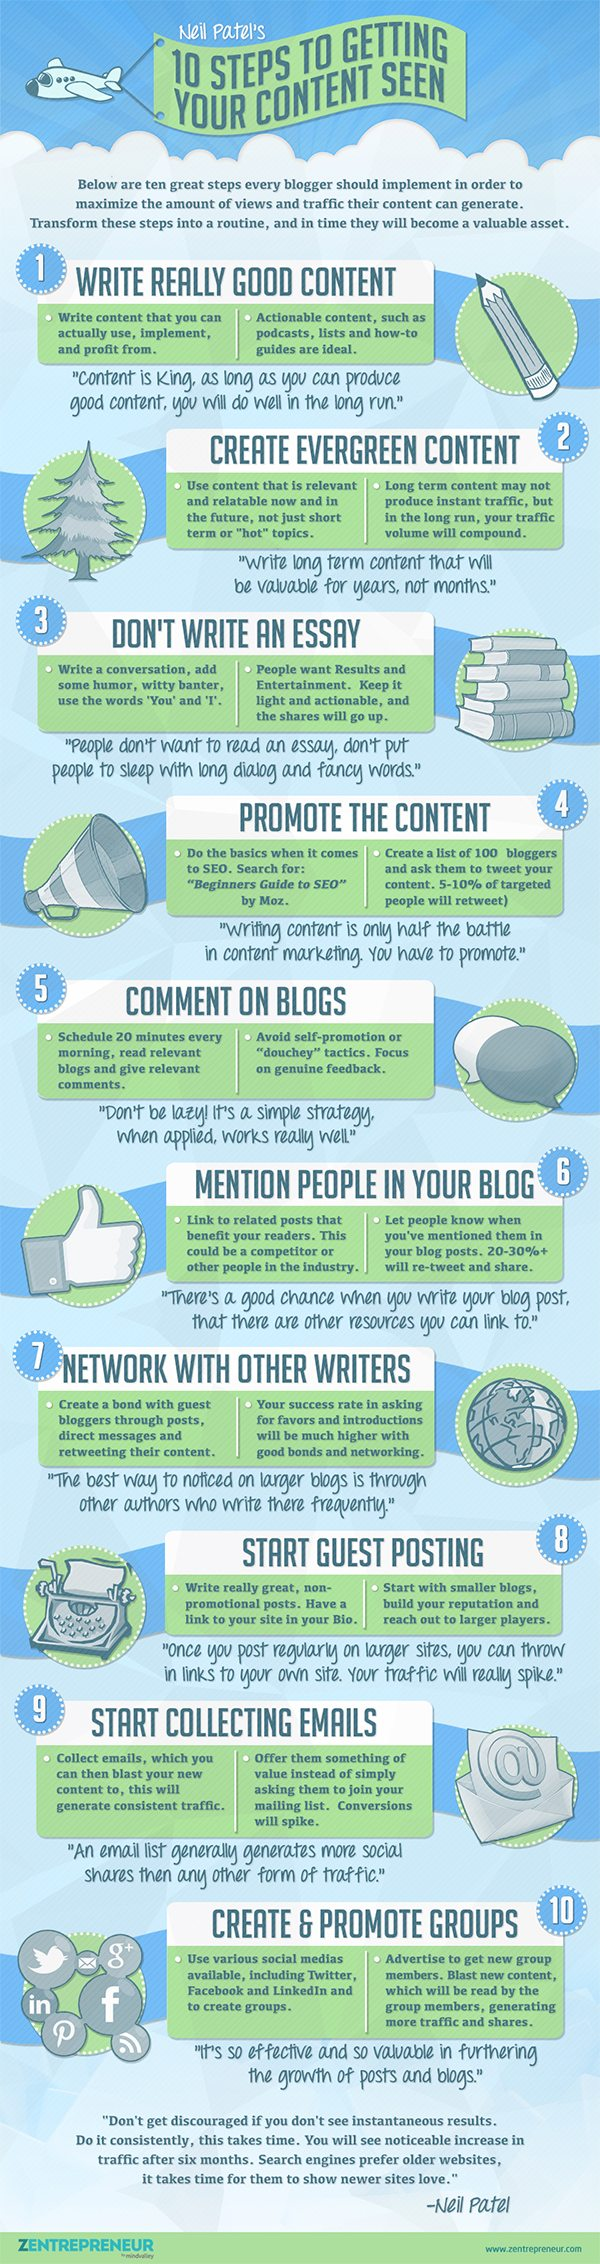 10 steps to improve your content visibility